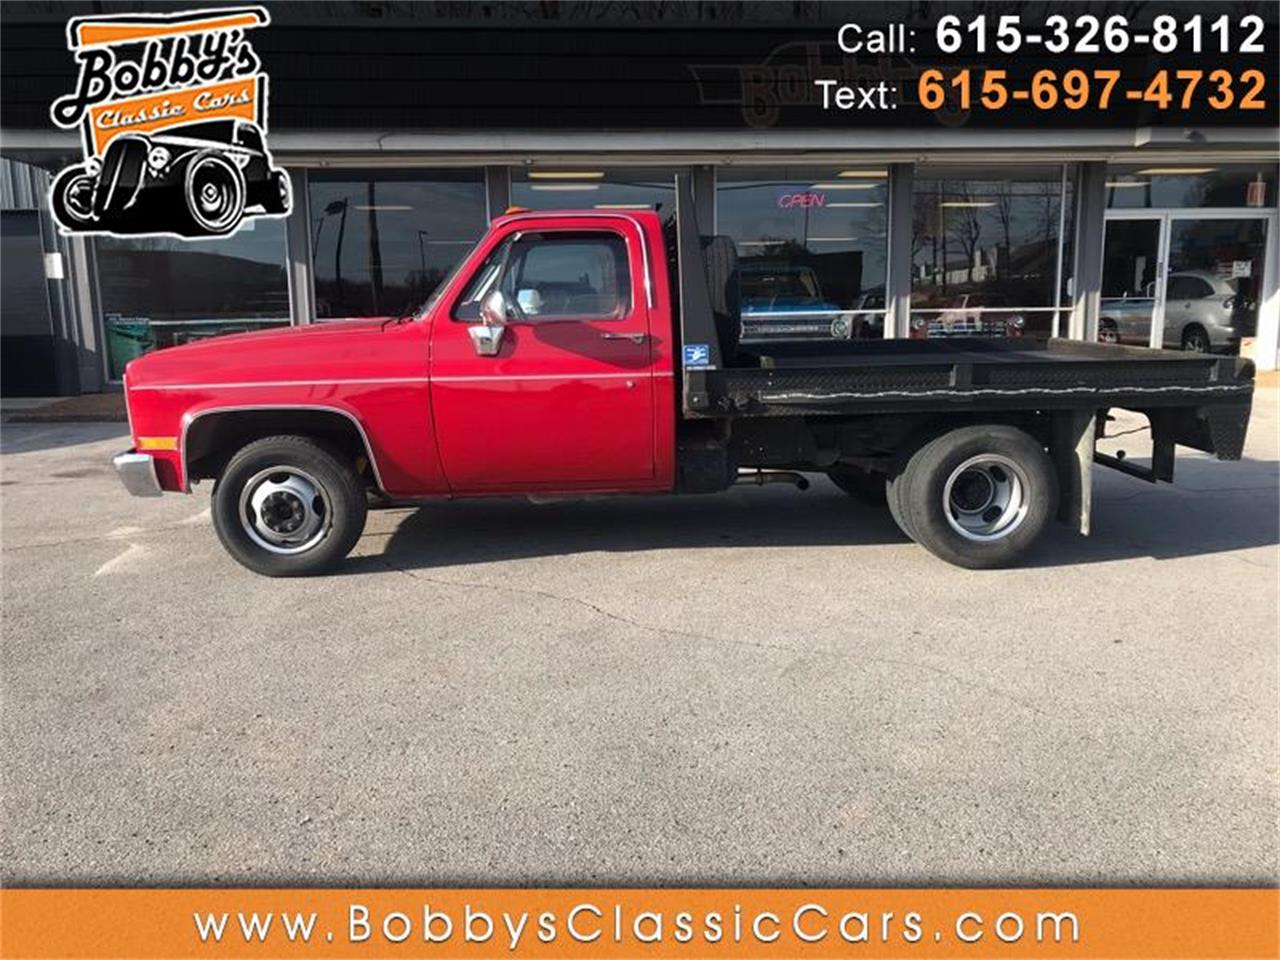 For Sale: 1986 Chevrolet C30 in Dickson, Tennessee